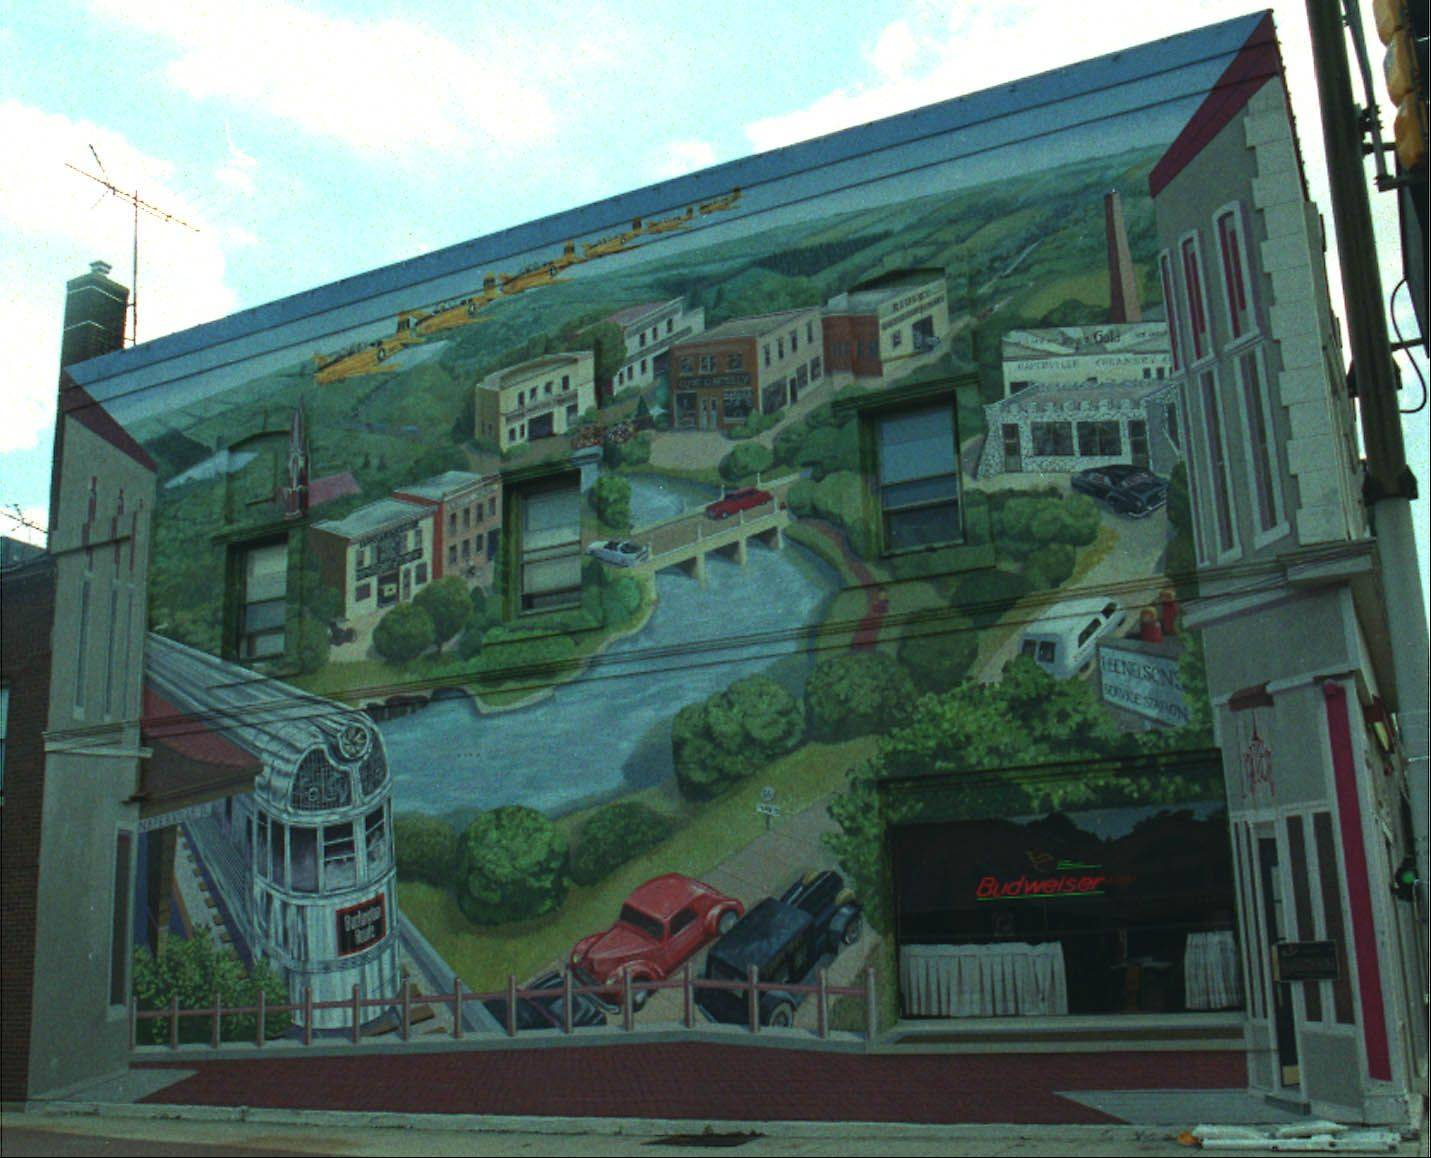 """A City in Transit"" by artists Mariah de Forest and Hector Duarte depicts the evolution of travel on the side wall of the Lantern Restaurant at the corner of Washington Street and Chicago Avenue in Naperville."